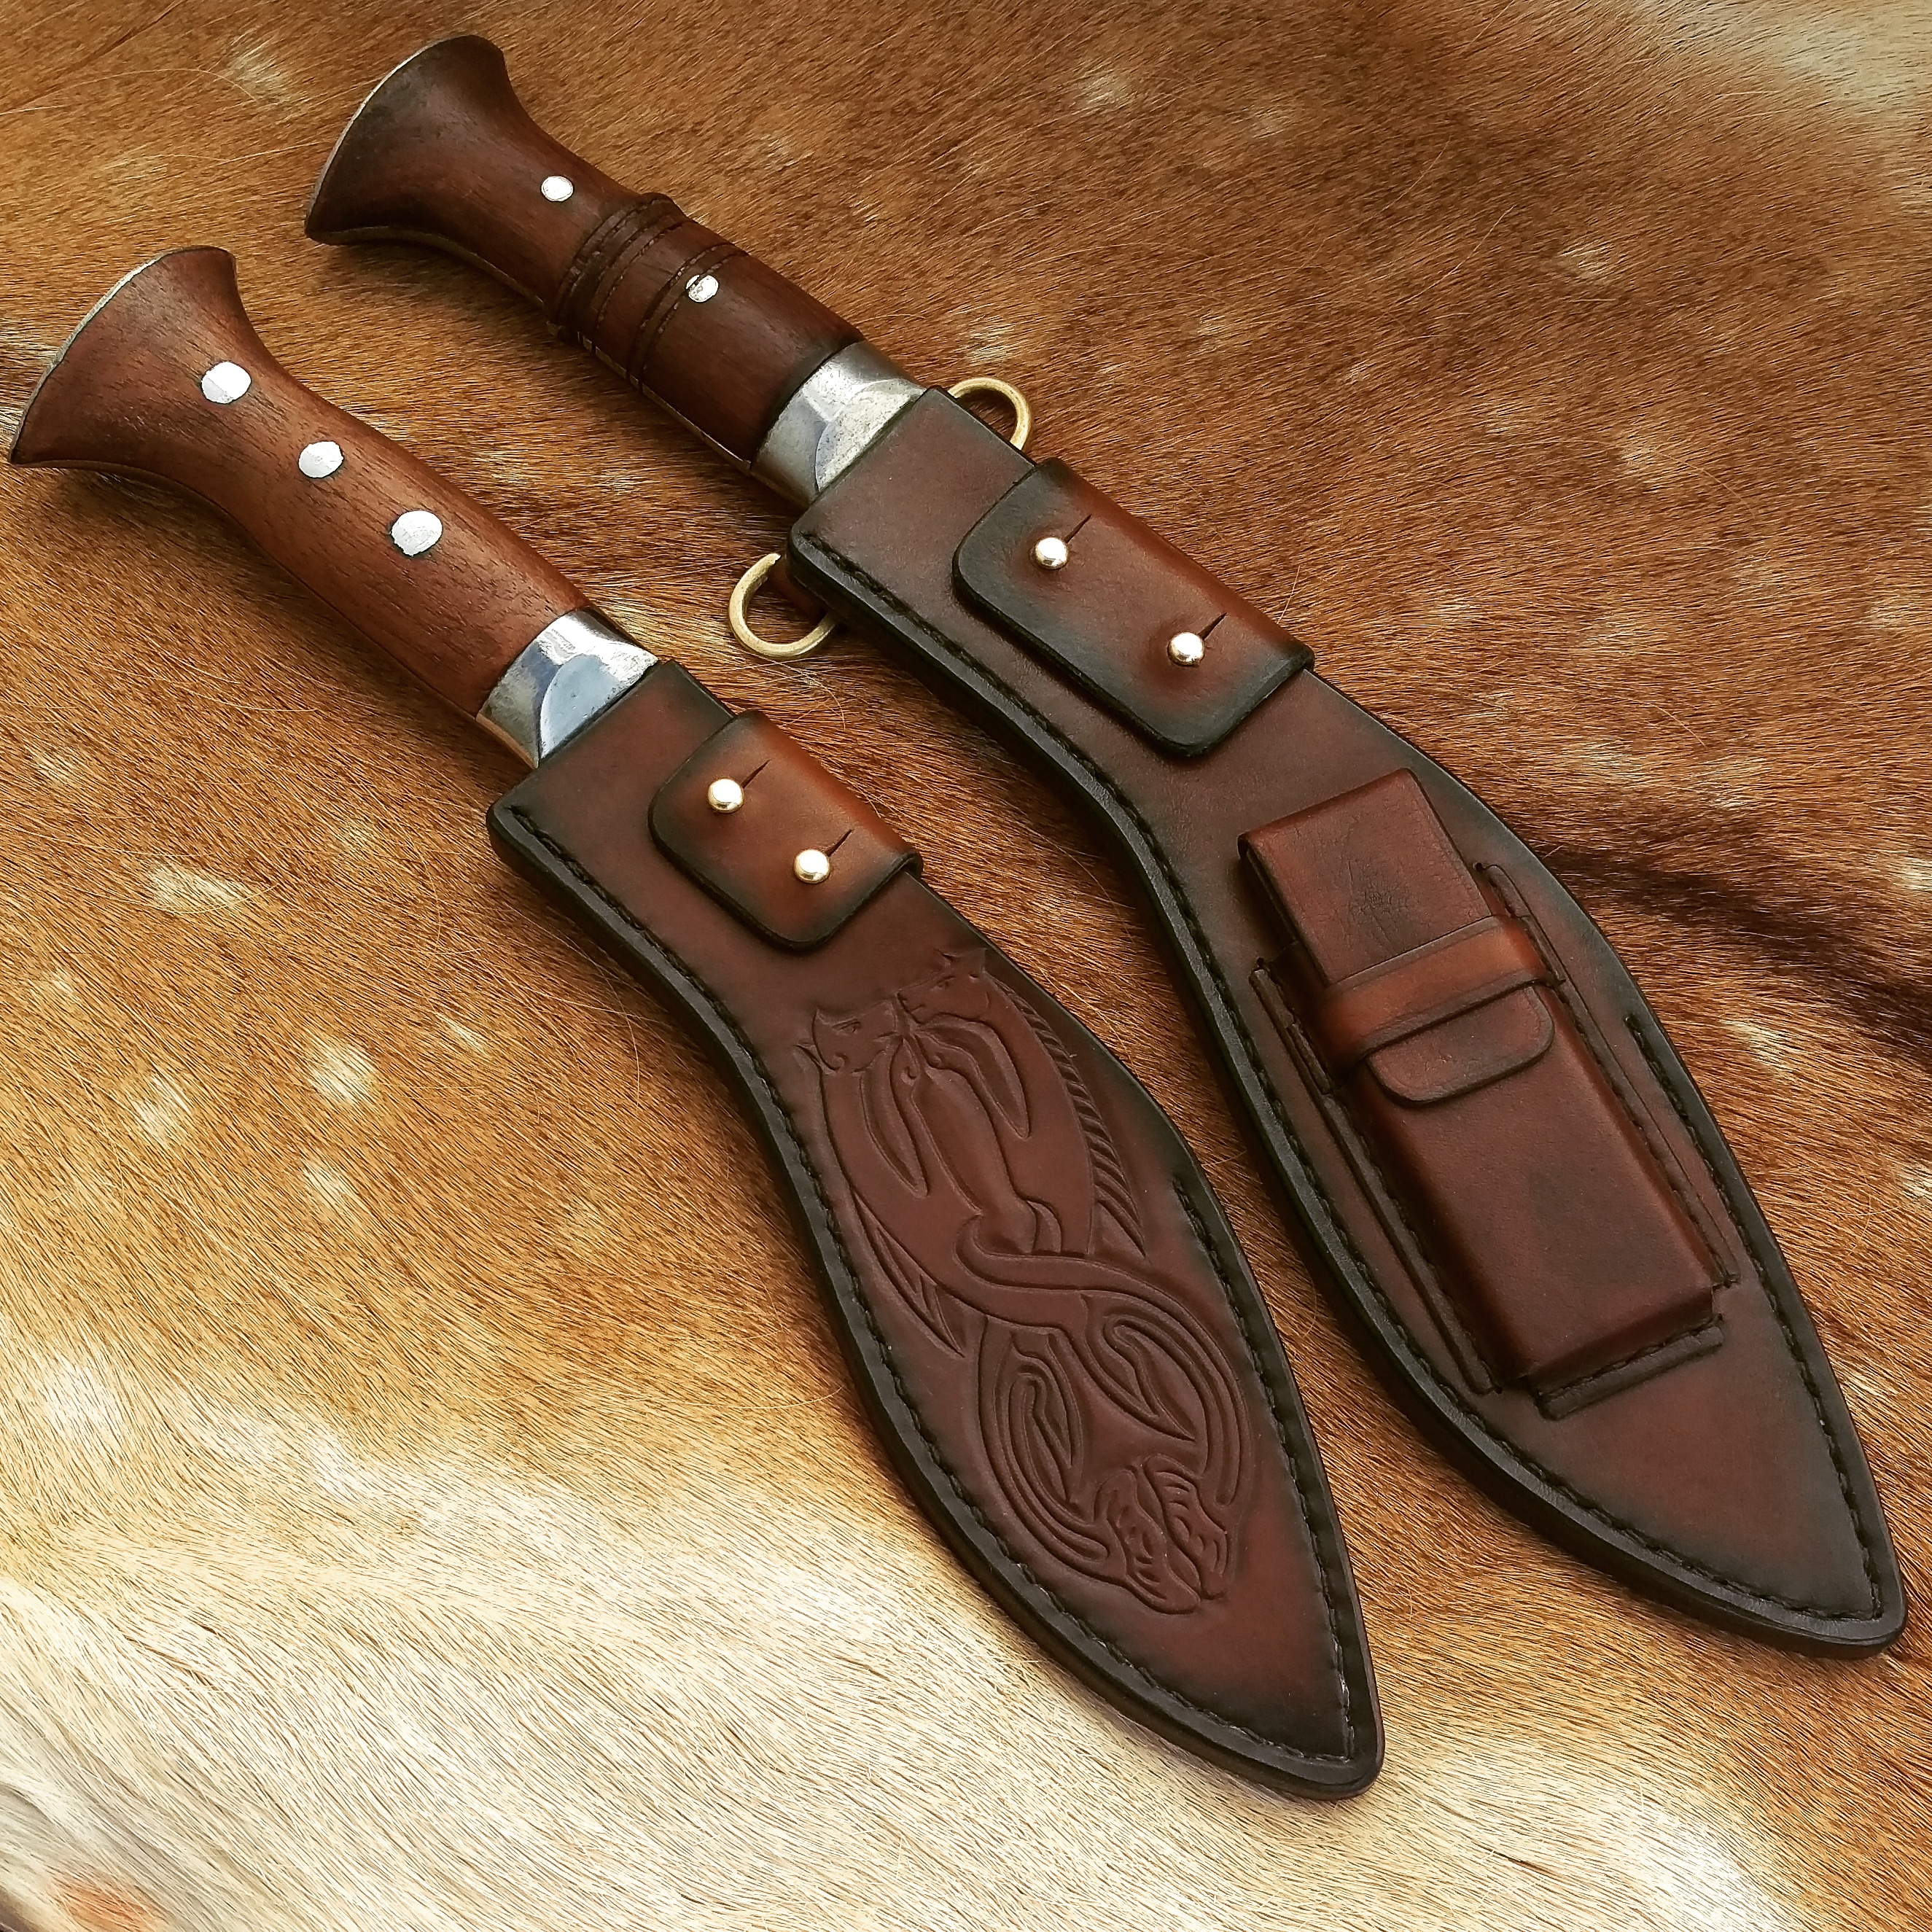 kukri sheaths